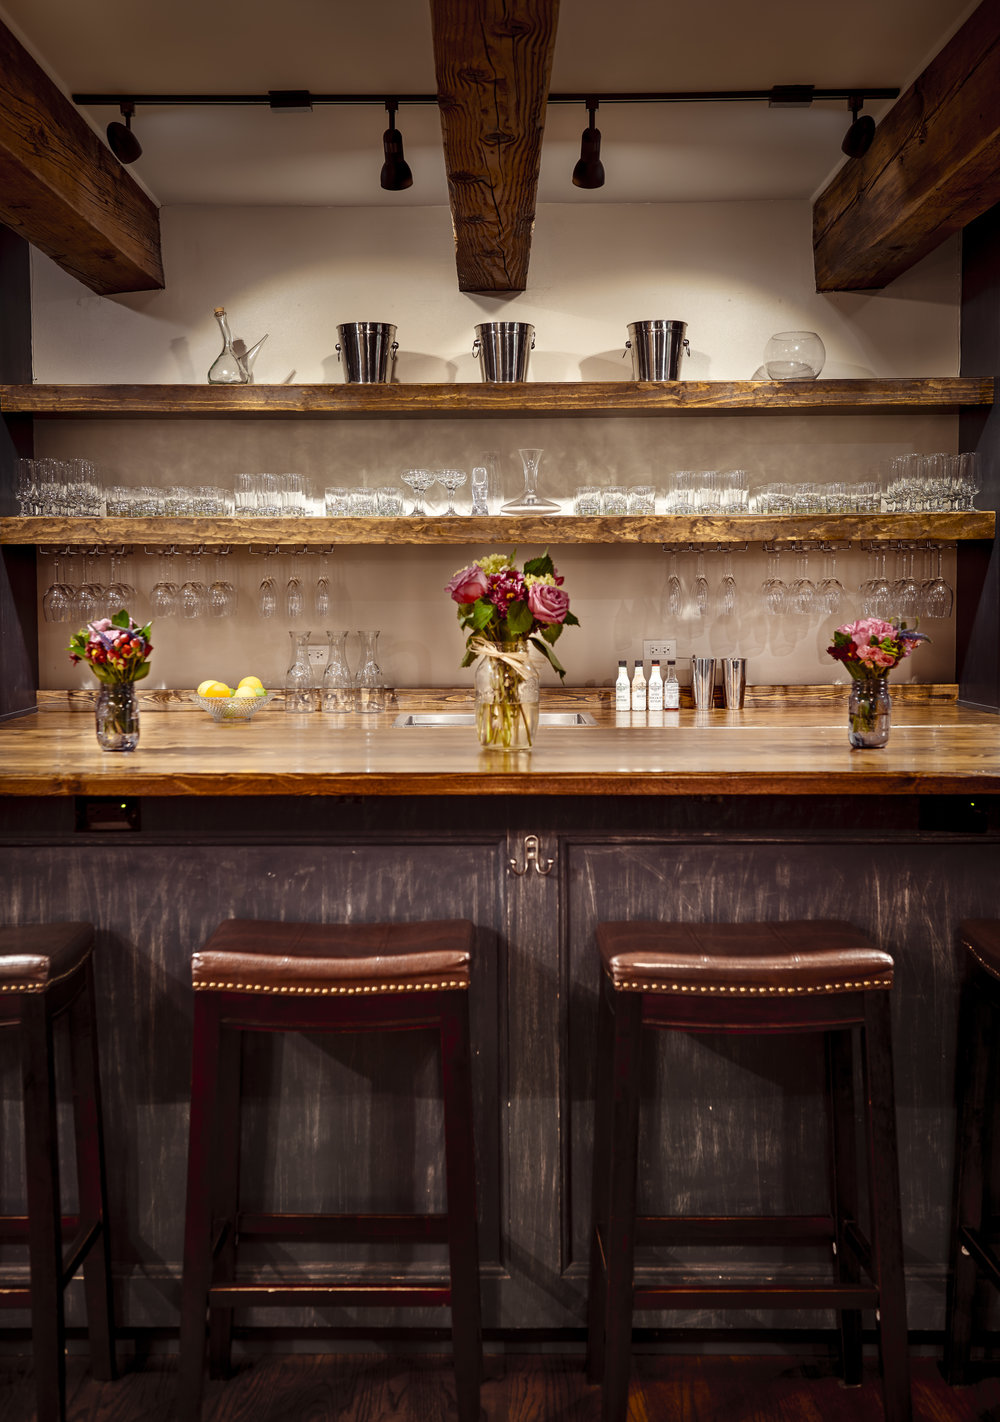 Tasting Room - With a 20 foot bar, glassware for every occasion, cocktail supplies for aspiring mixologists, complimentary non-alcoholics and garnishes, you are enjoying your drink quicker than at any other venue.